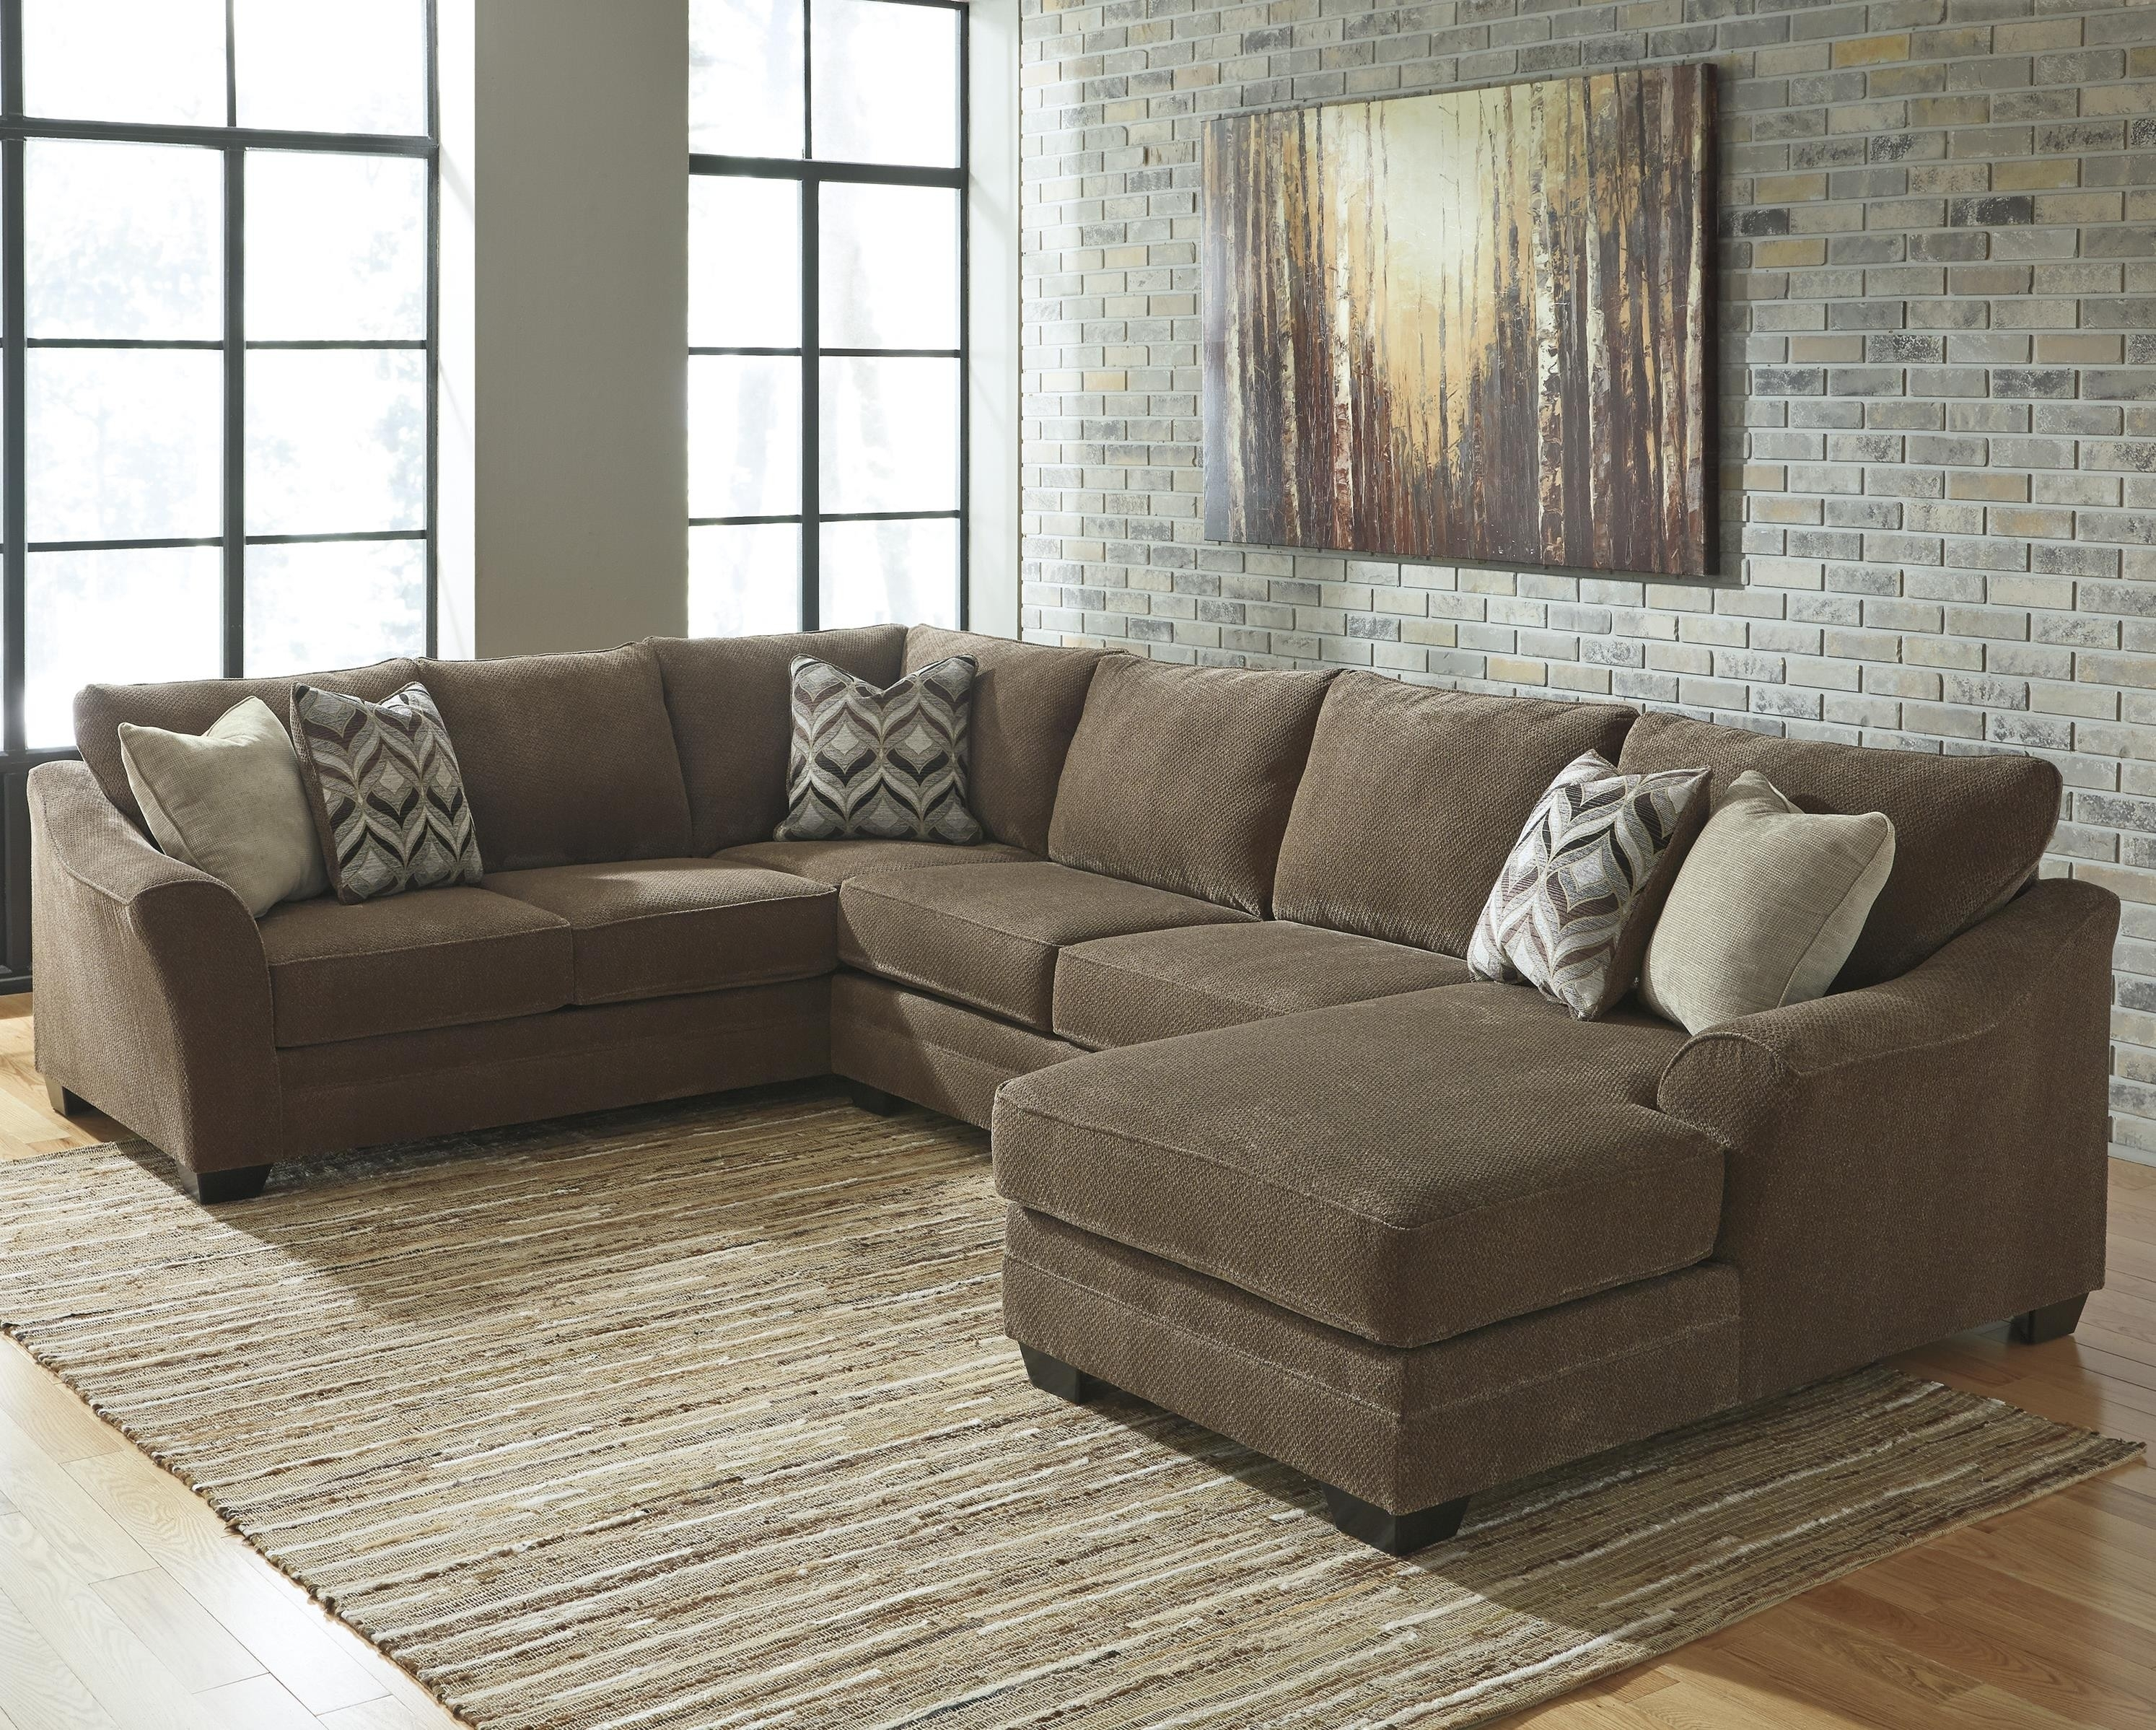 3 Piece Sectional Malbry Point W Laf Chaise Living Spaces 223533 0 Throughout Malbry Point 3 Piece Sectionals With Raf Chaise (View 8 of 30)